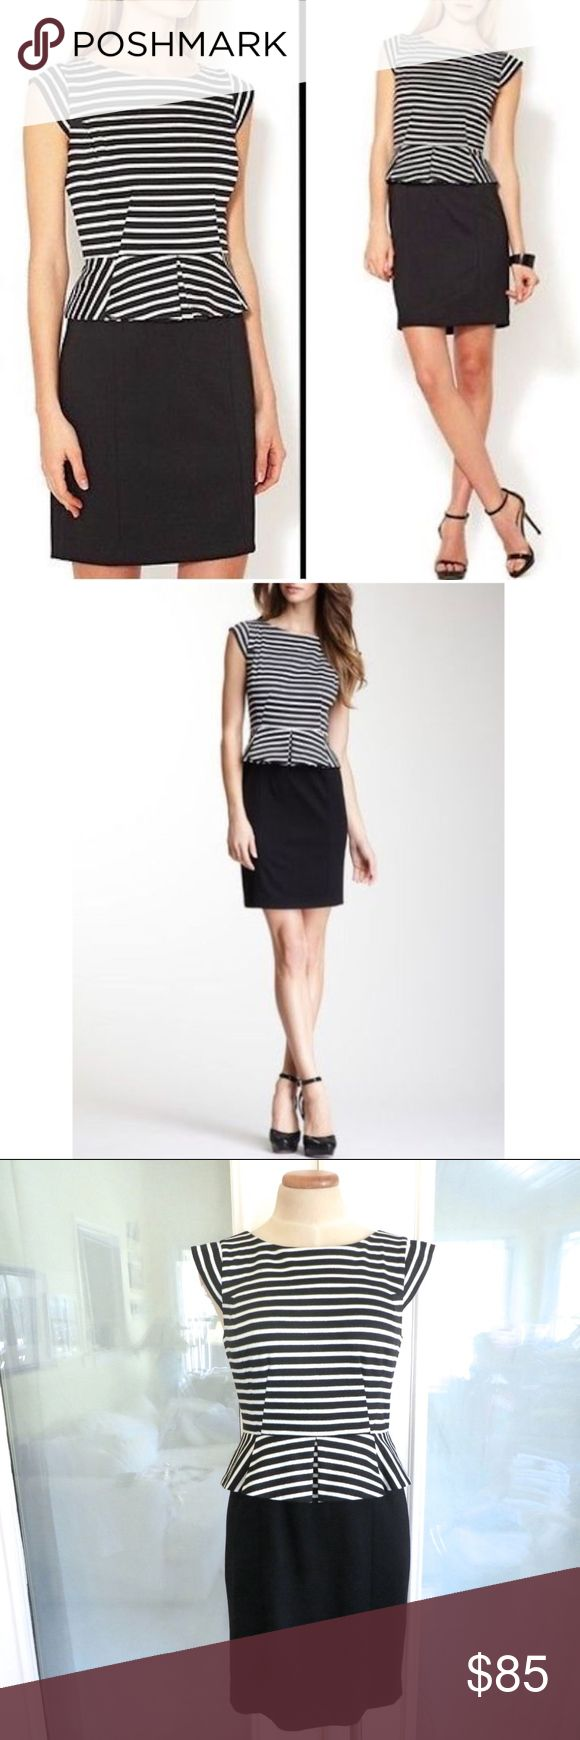 """NWT 🦋 CYNTHIA STEFFE New with reticket tags and no defects. Style name: Dylan. Size 4. Black white and silver metallic stripe top with solid black skirt, peplum silhouette, cap sleeves, mini length.  Approximately 16.5"""" across armpit seam to armpit seam, 14.5"""" across at smallest part of waist, 35"""" long.   Retails for $238.  Automatically reduce price 20% for 3+ bundles. Cynthia Steffe Dresses Mini"""